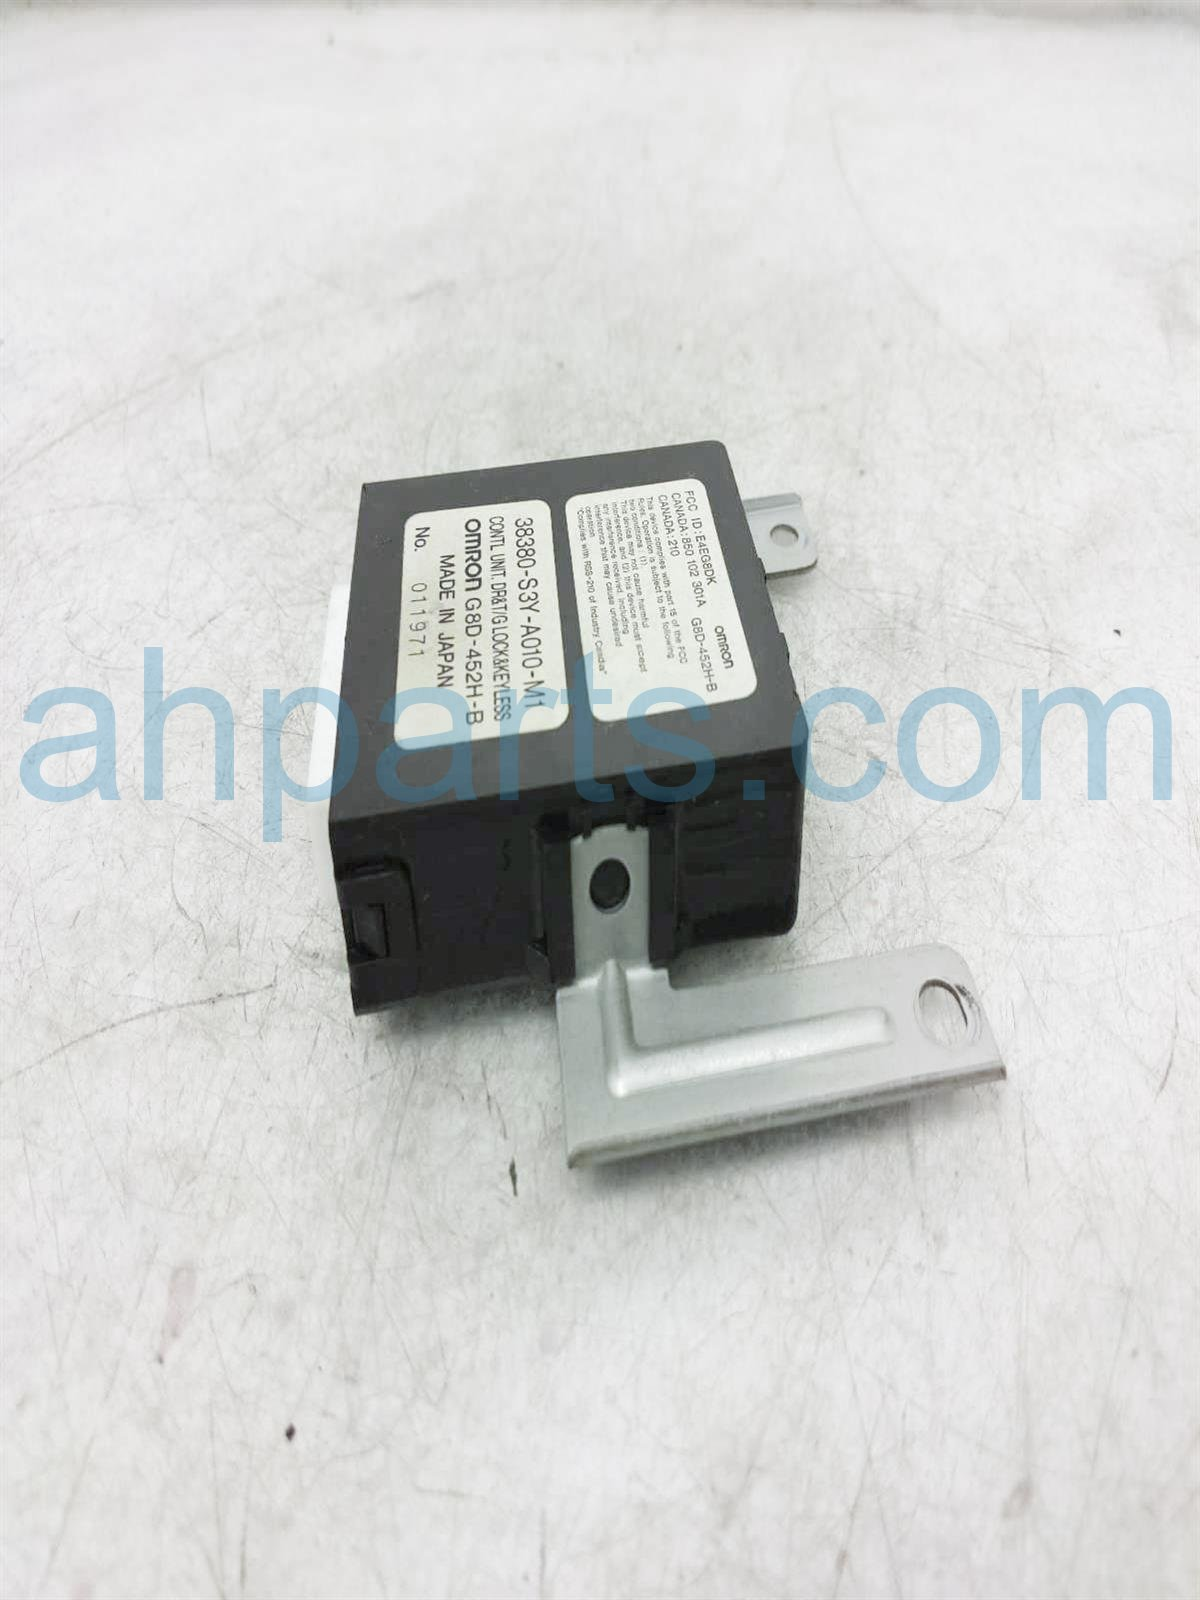 2003 Honda Insight Keyless Entry Control Unit 38380 S3Y A01 Replacement